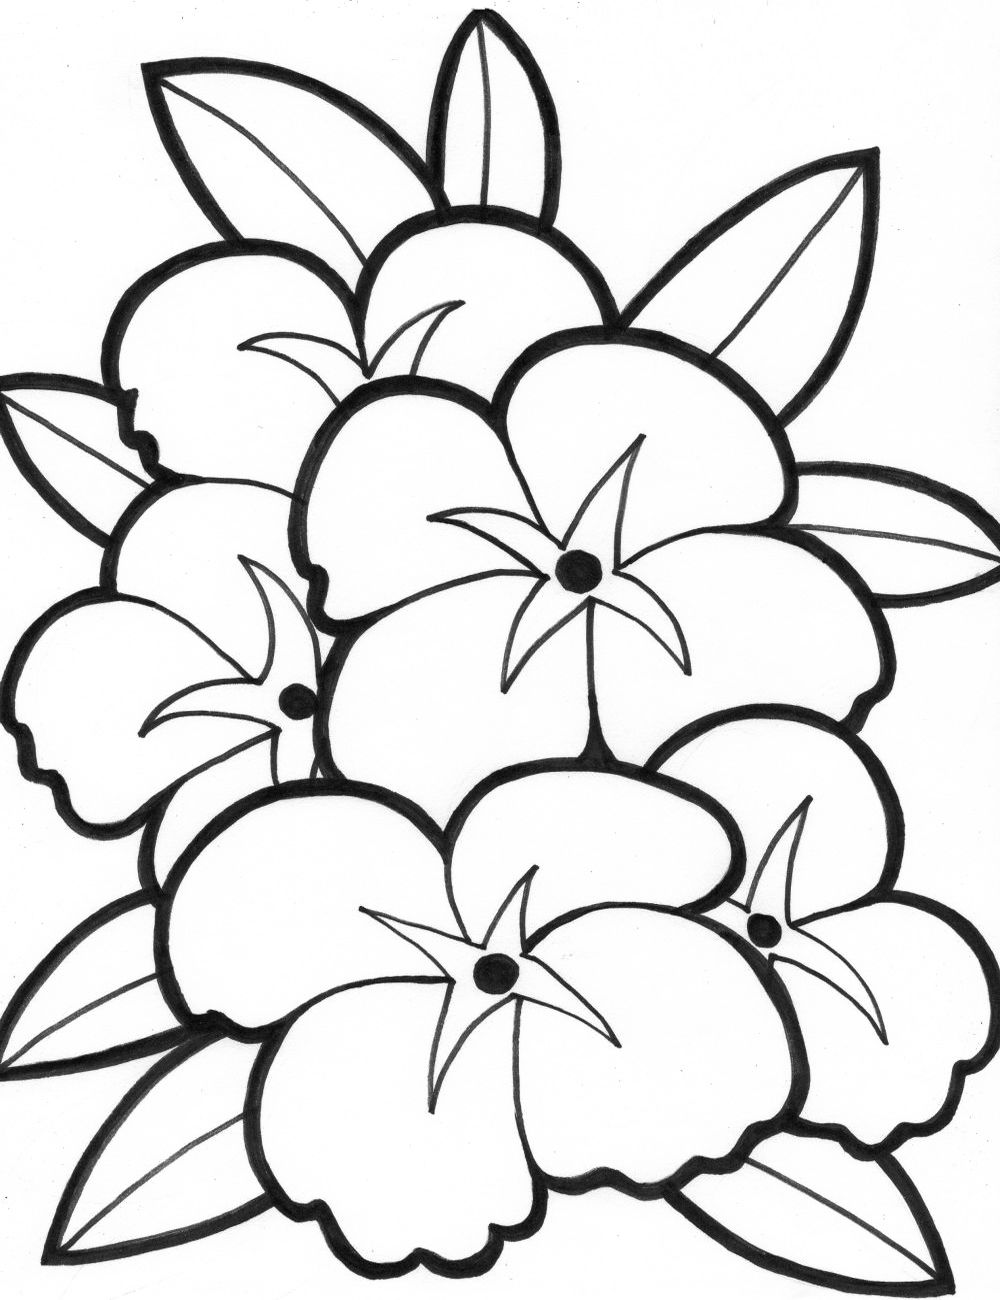 Simple Flower Coloring Pages Printable Flower Coloring Pages Flower Coloring Sheets Mandala Coloring Pages